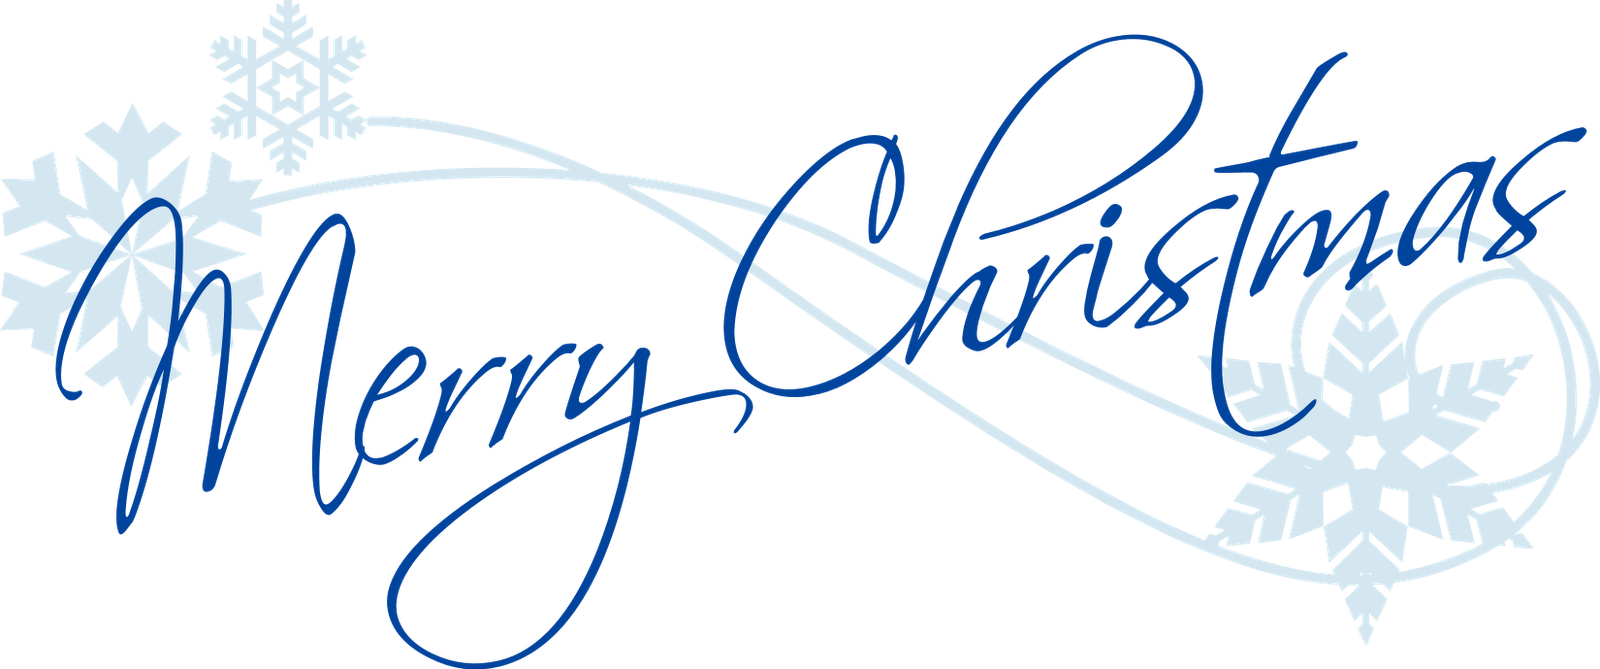 Merry-Christmas-Text-Transparent-14.png